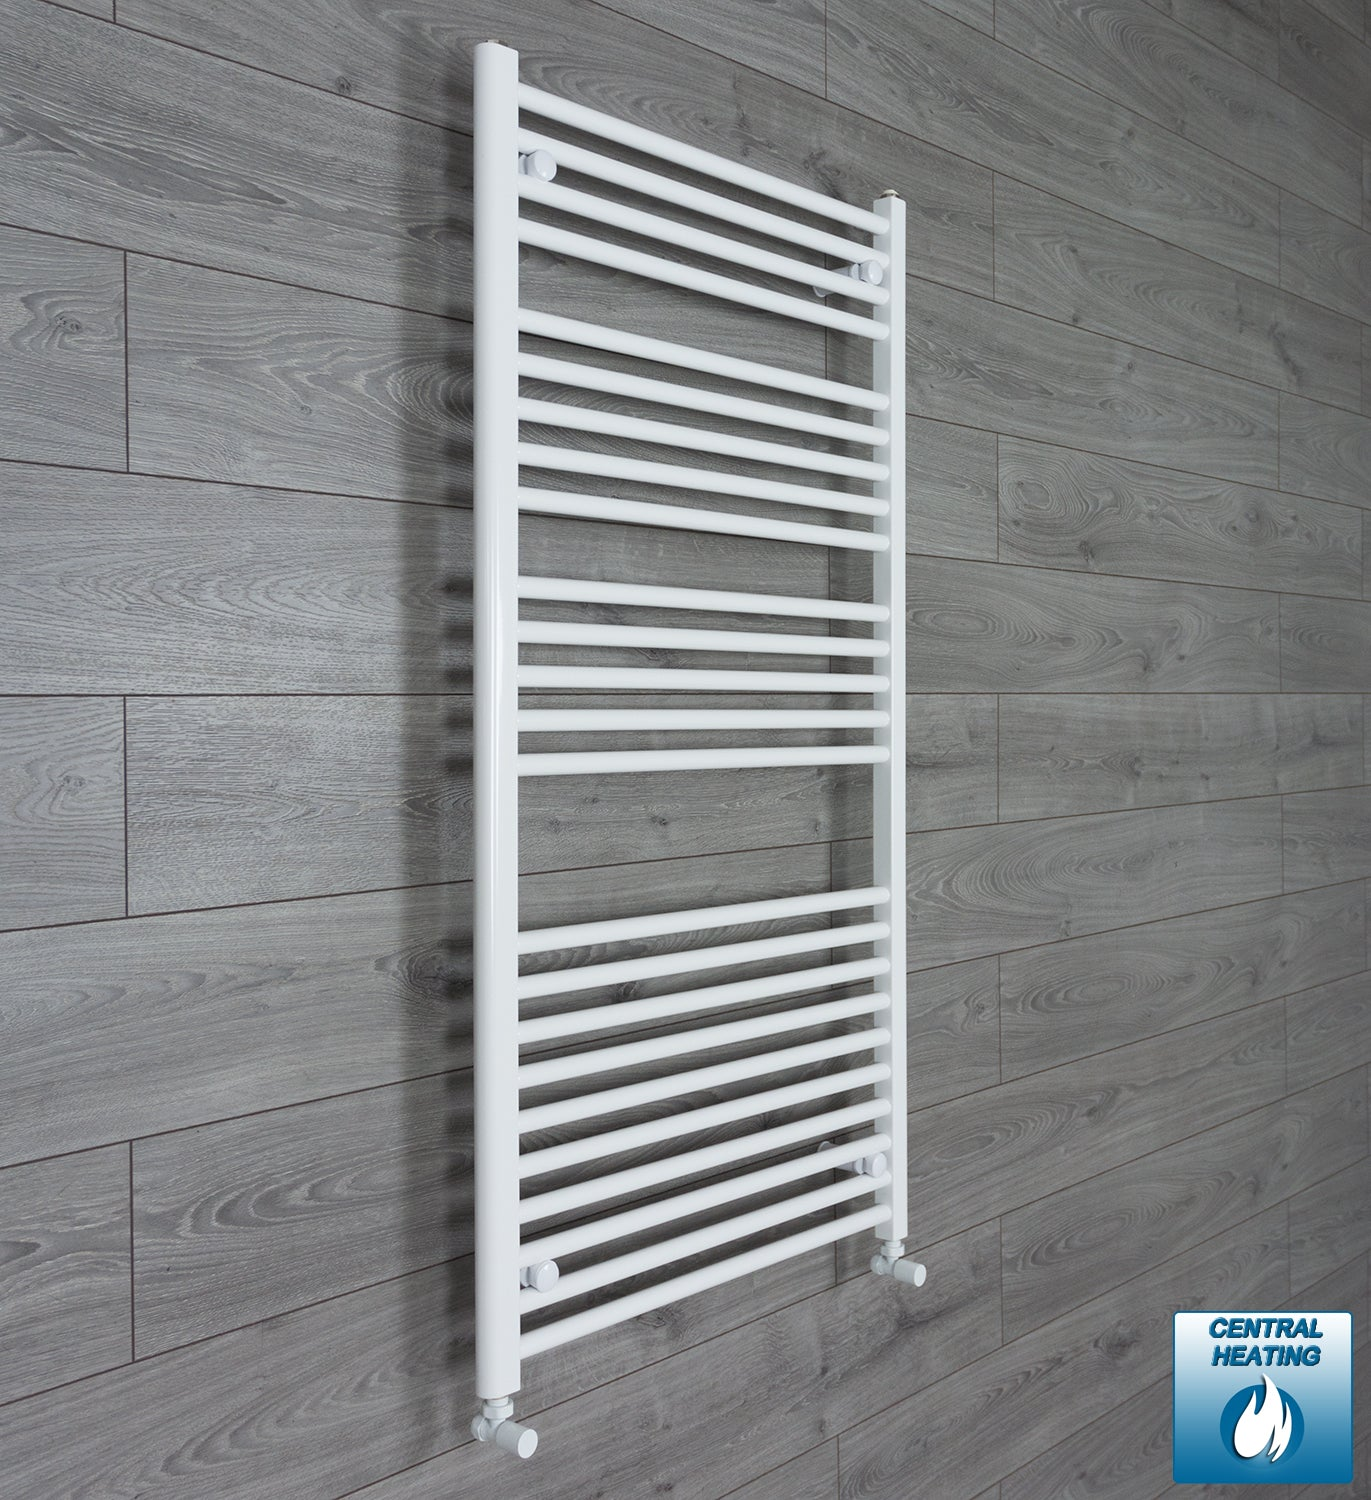 700mm Wide 1300mm High White Towel Rail Radiator With Angled Valve